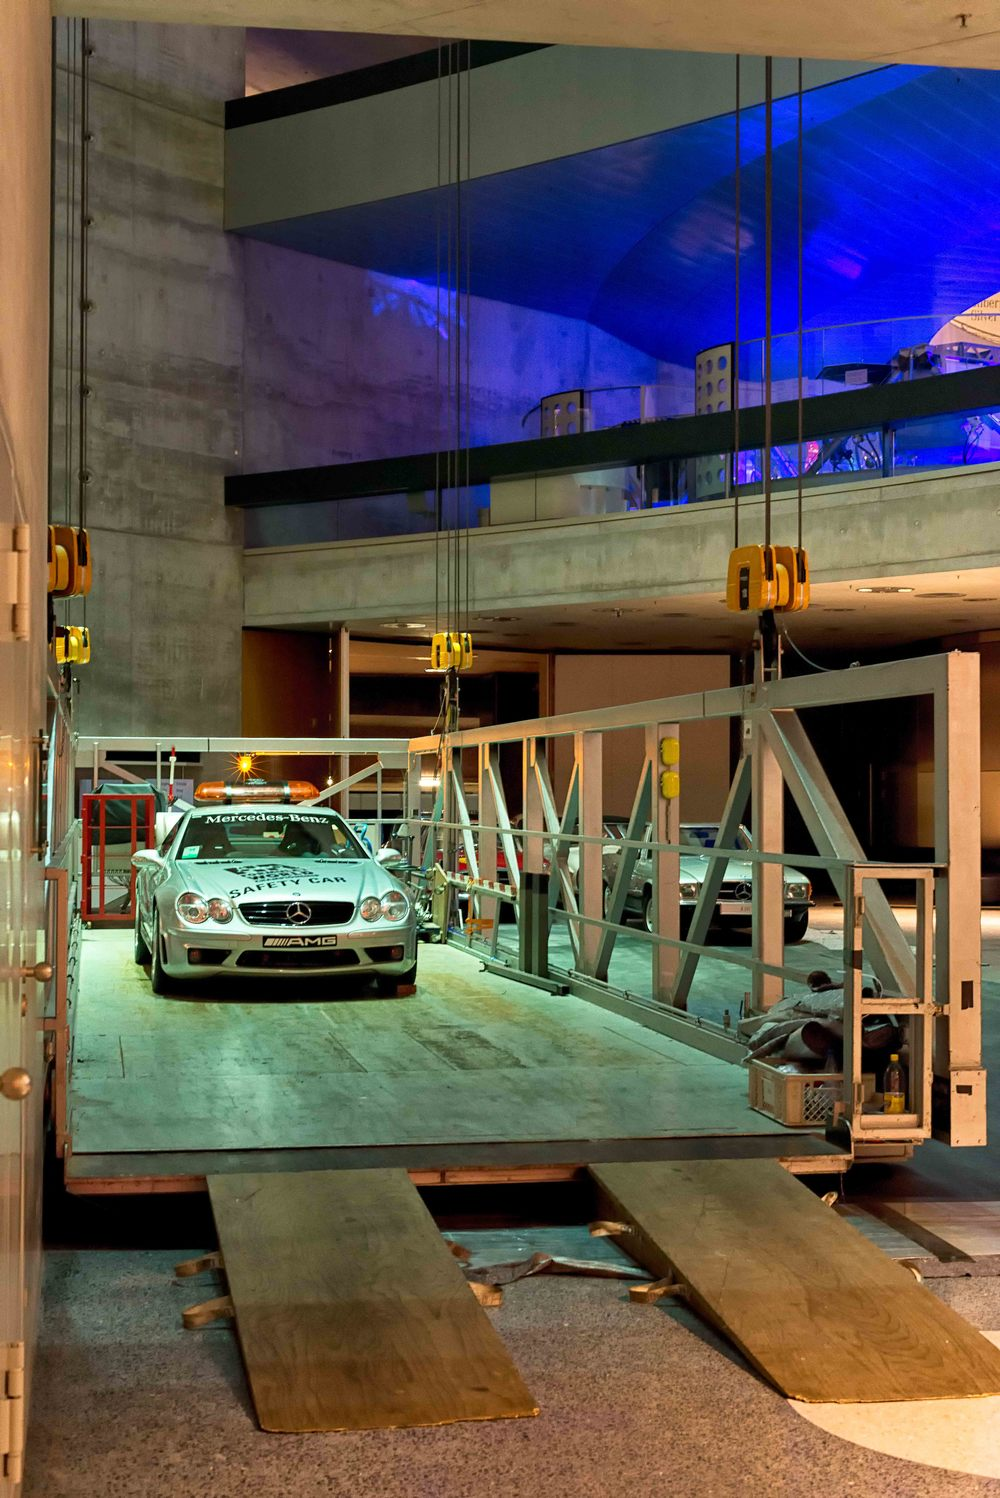 Special: Change of vehicles in the museum with the lift system.